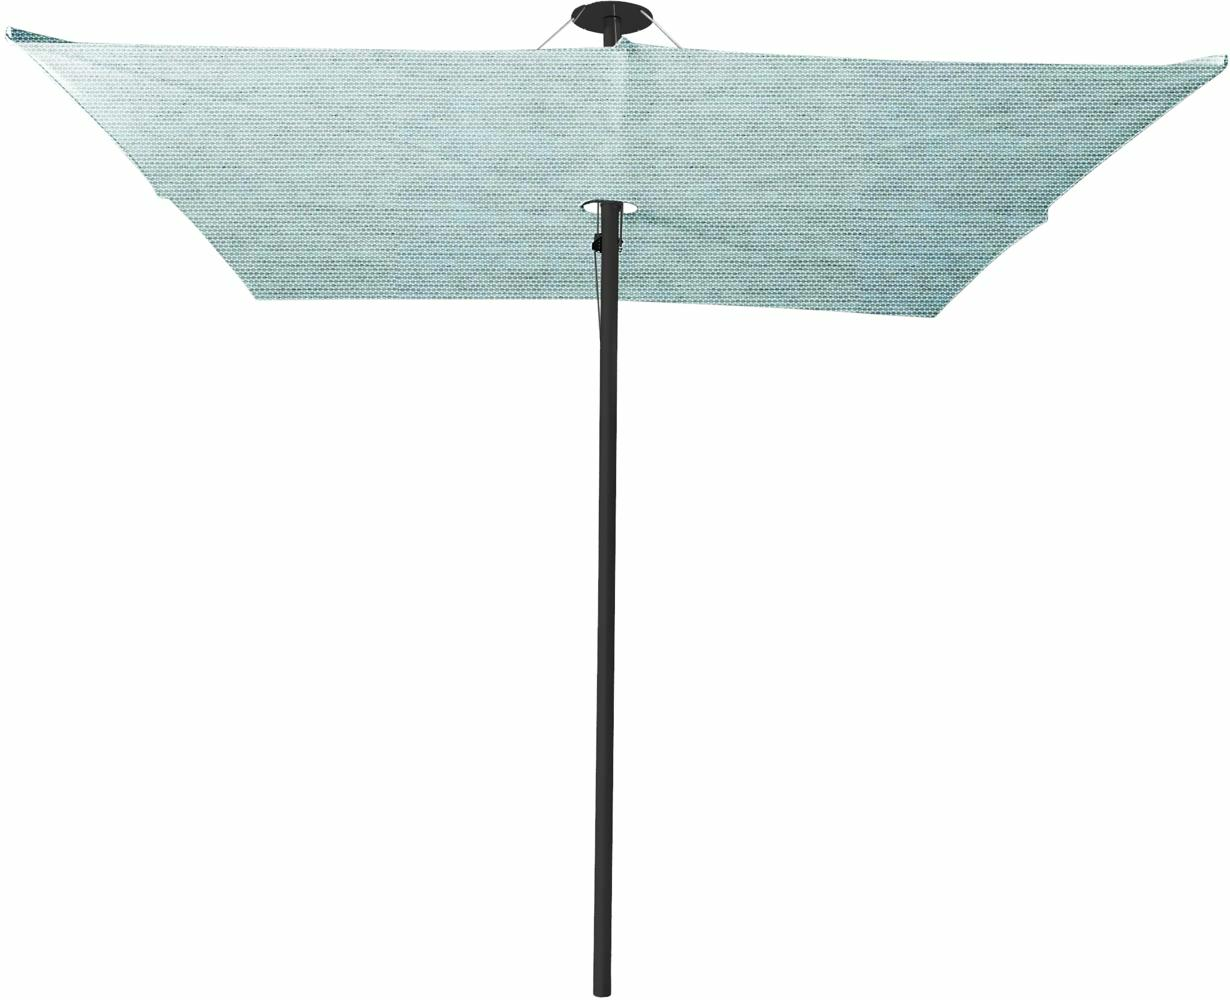 Infina center post umbrella, 2,5 m square, with frame in Dusk and Solidum Curacao canopy.